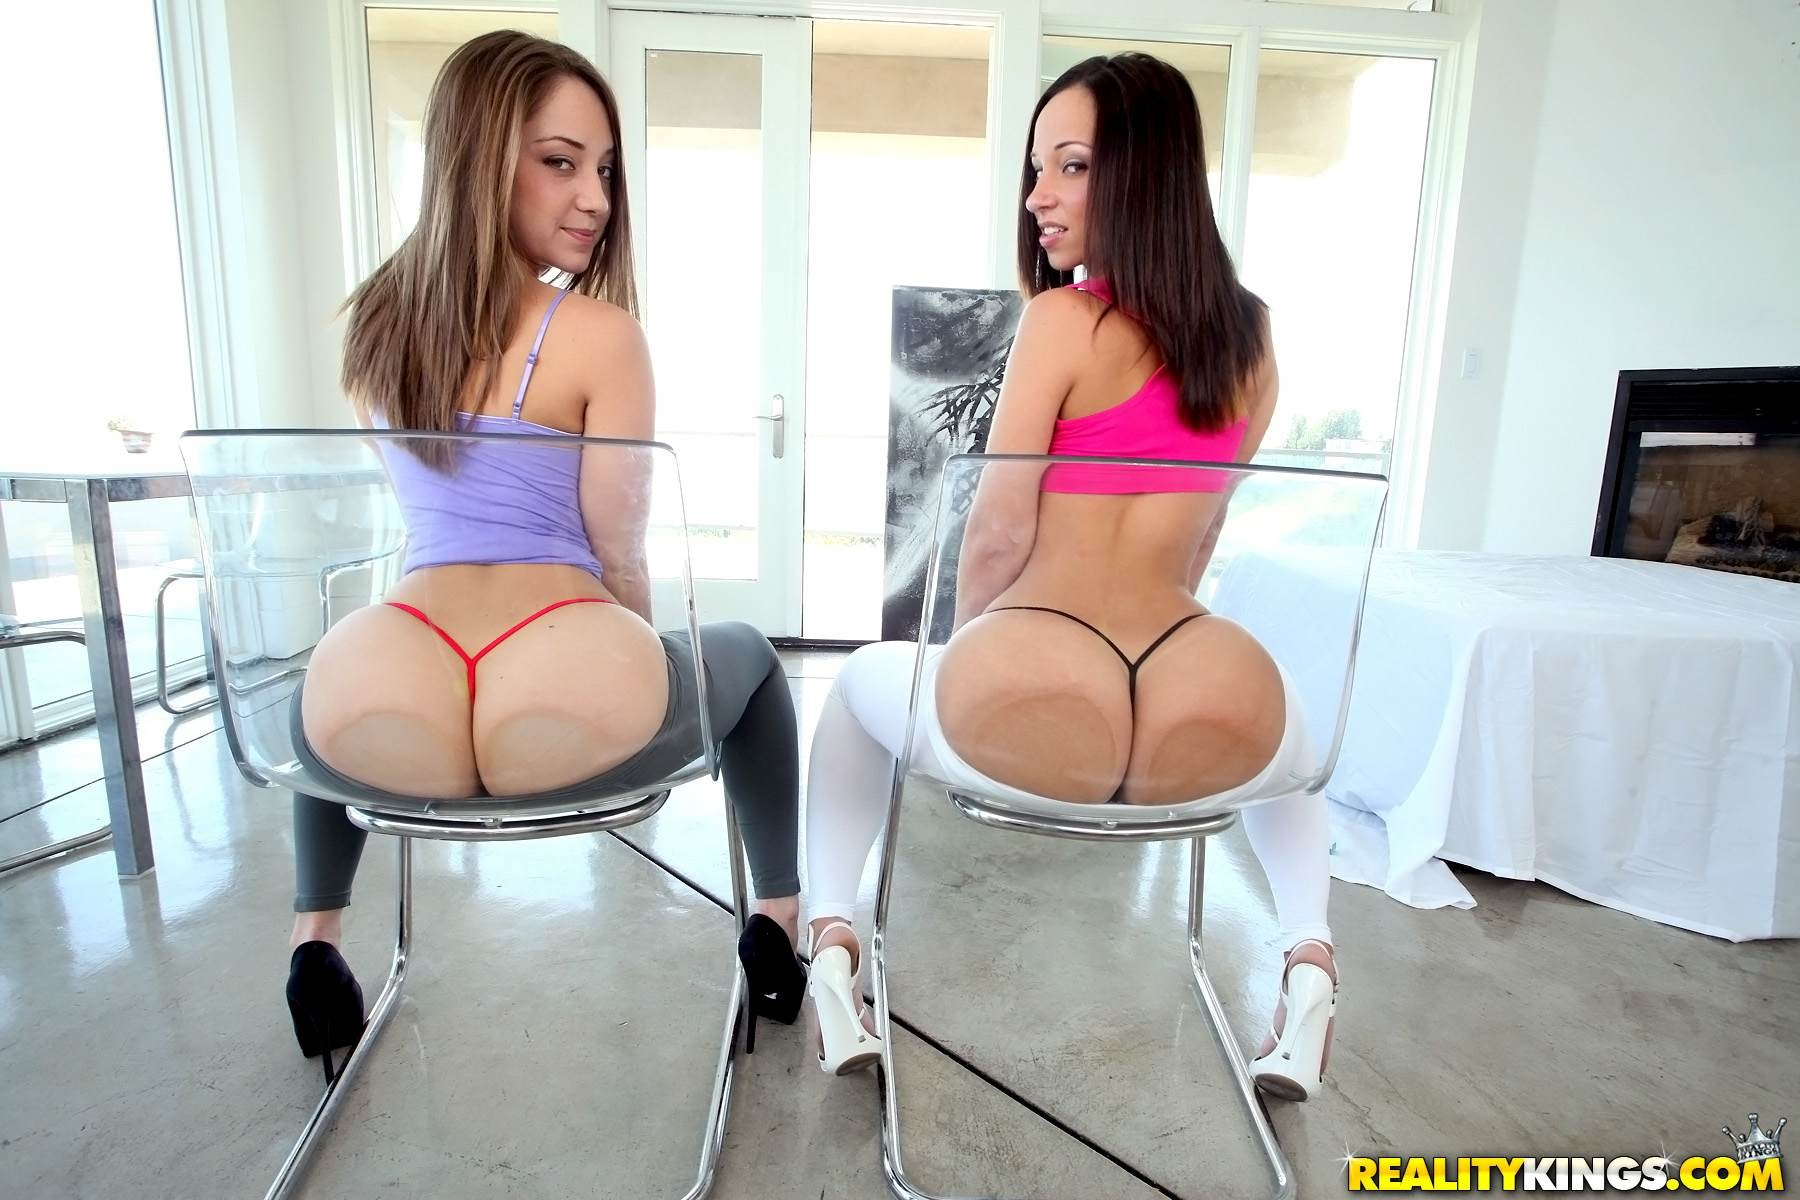 Dualistic of sexiest ladies jada stevens and remy la croix analed